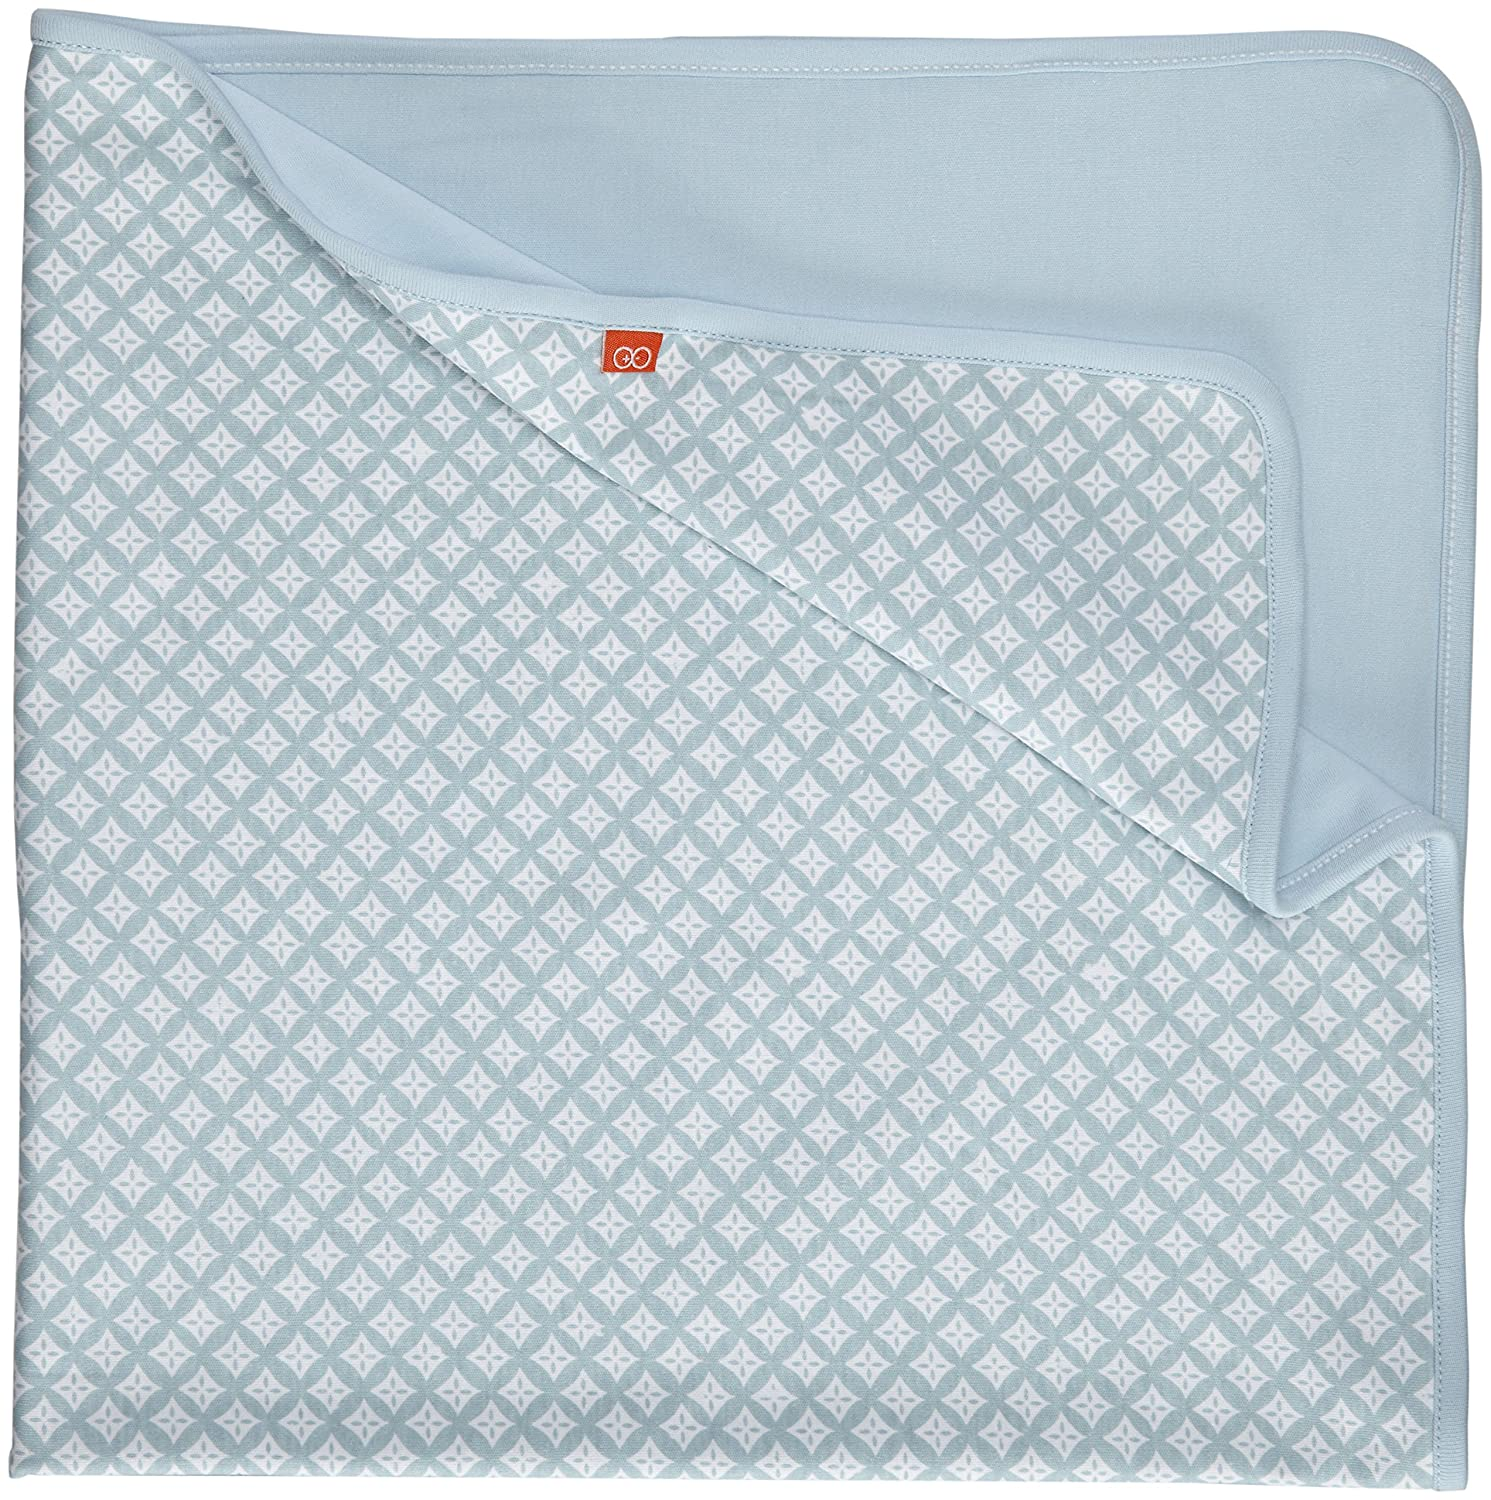 Magnificent Baby Baby-Boys New-Born 2-Ply Reversible Blanket, Boy's Diamonds, One Size Boy' s Diamonds 2145-B